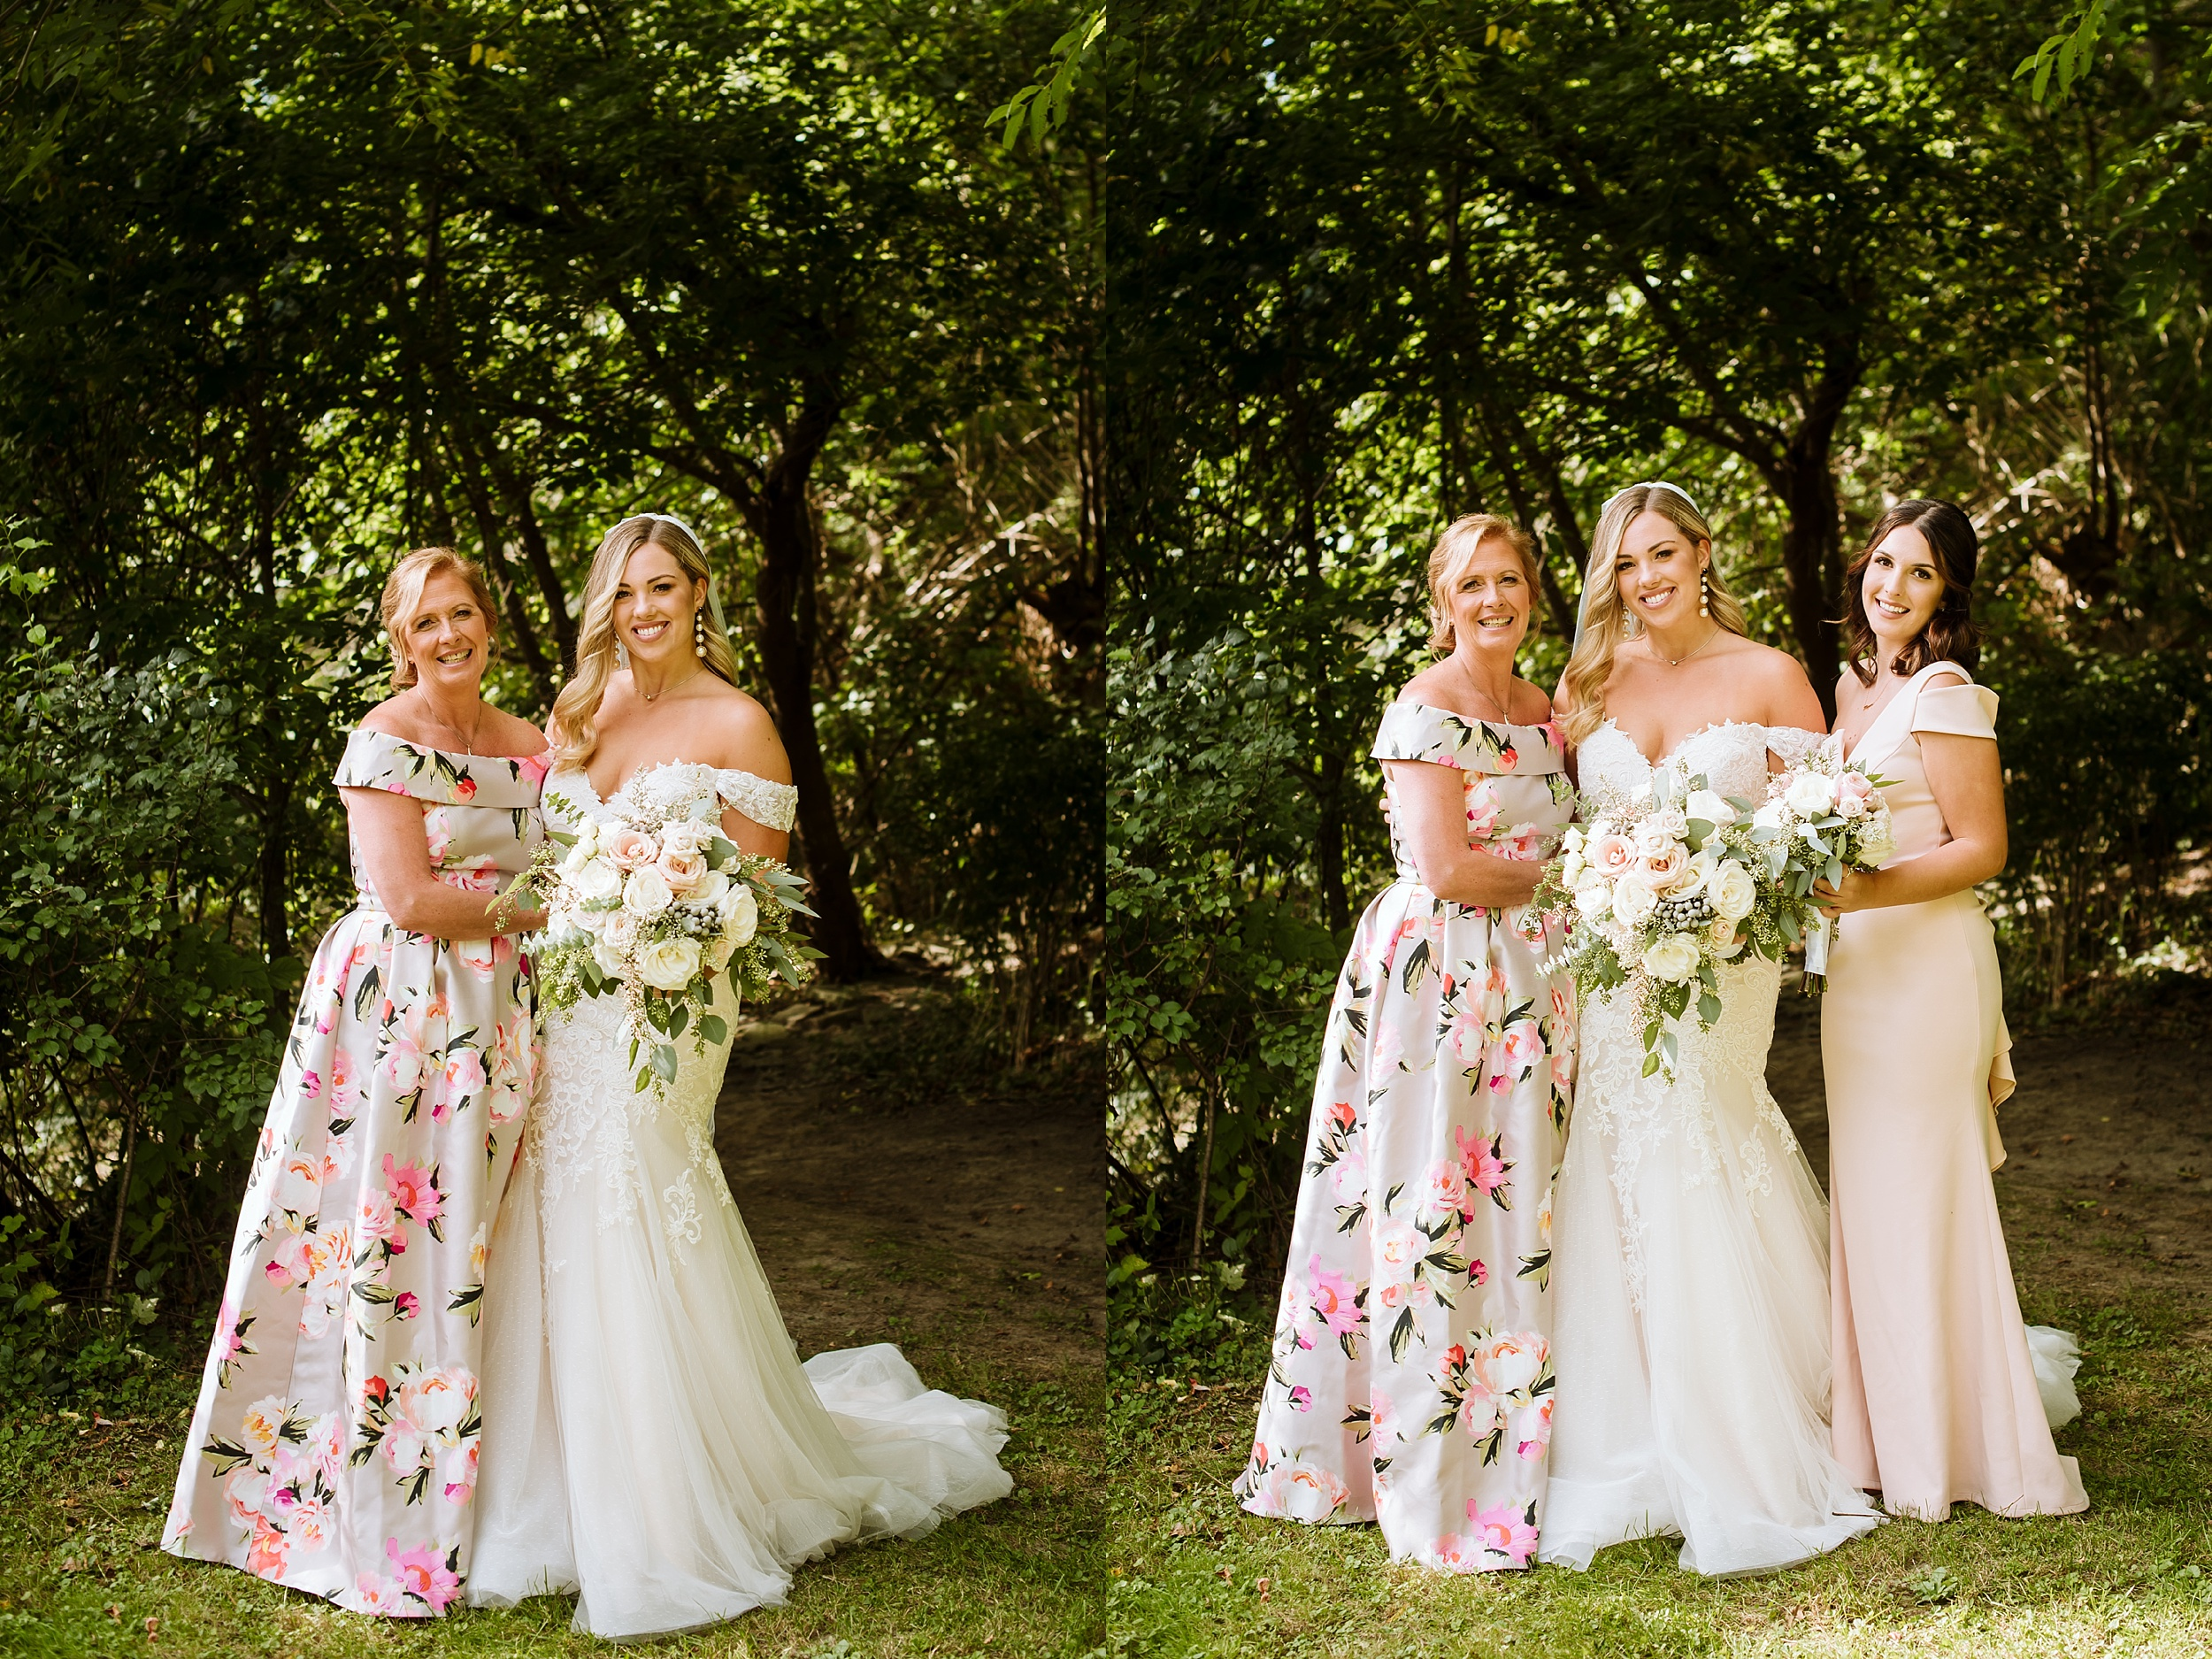 Rustic_Backyard_Wedding_Toronto_Photographer070.jpg